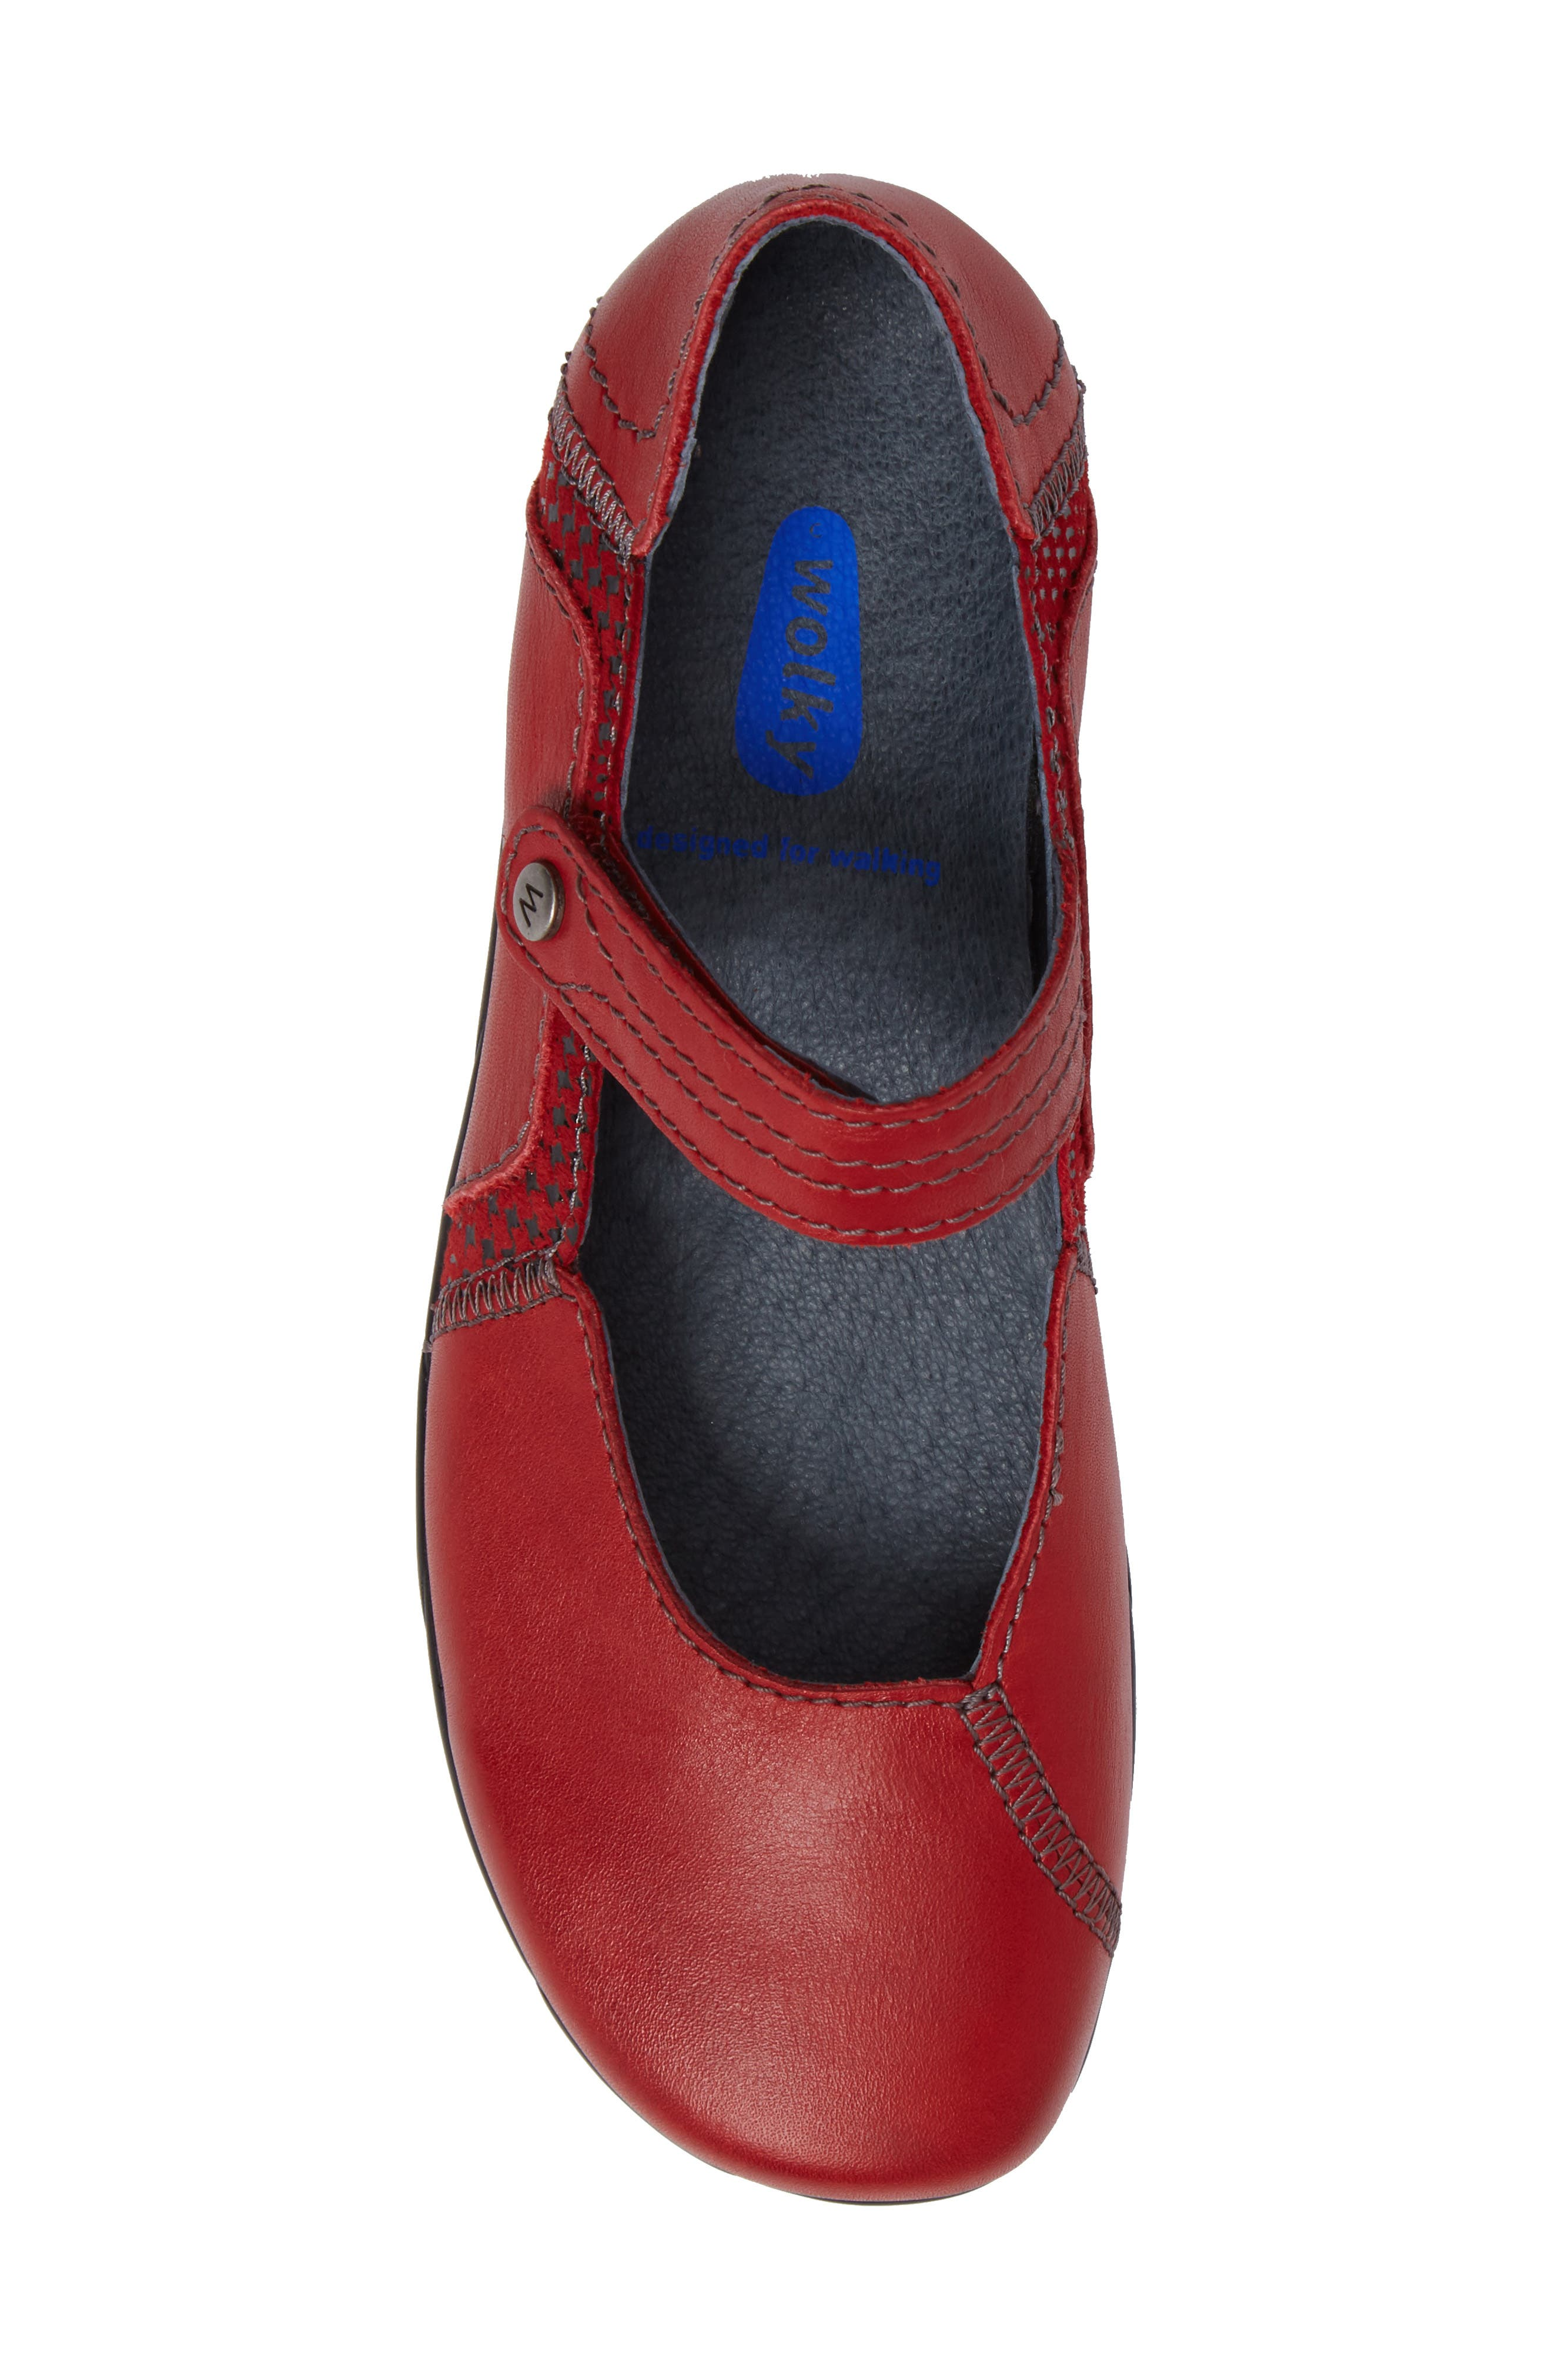 Gila Mary-Jane Flat,                             Alternate thumbnail 5, color,                             RED LEATHER